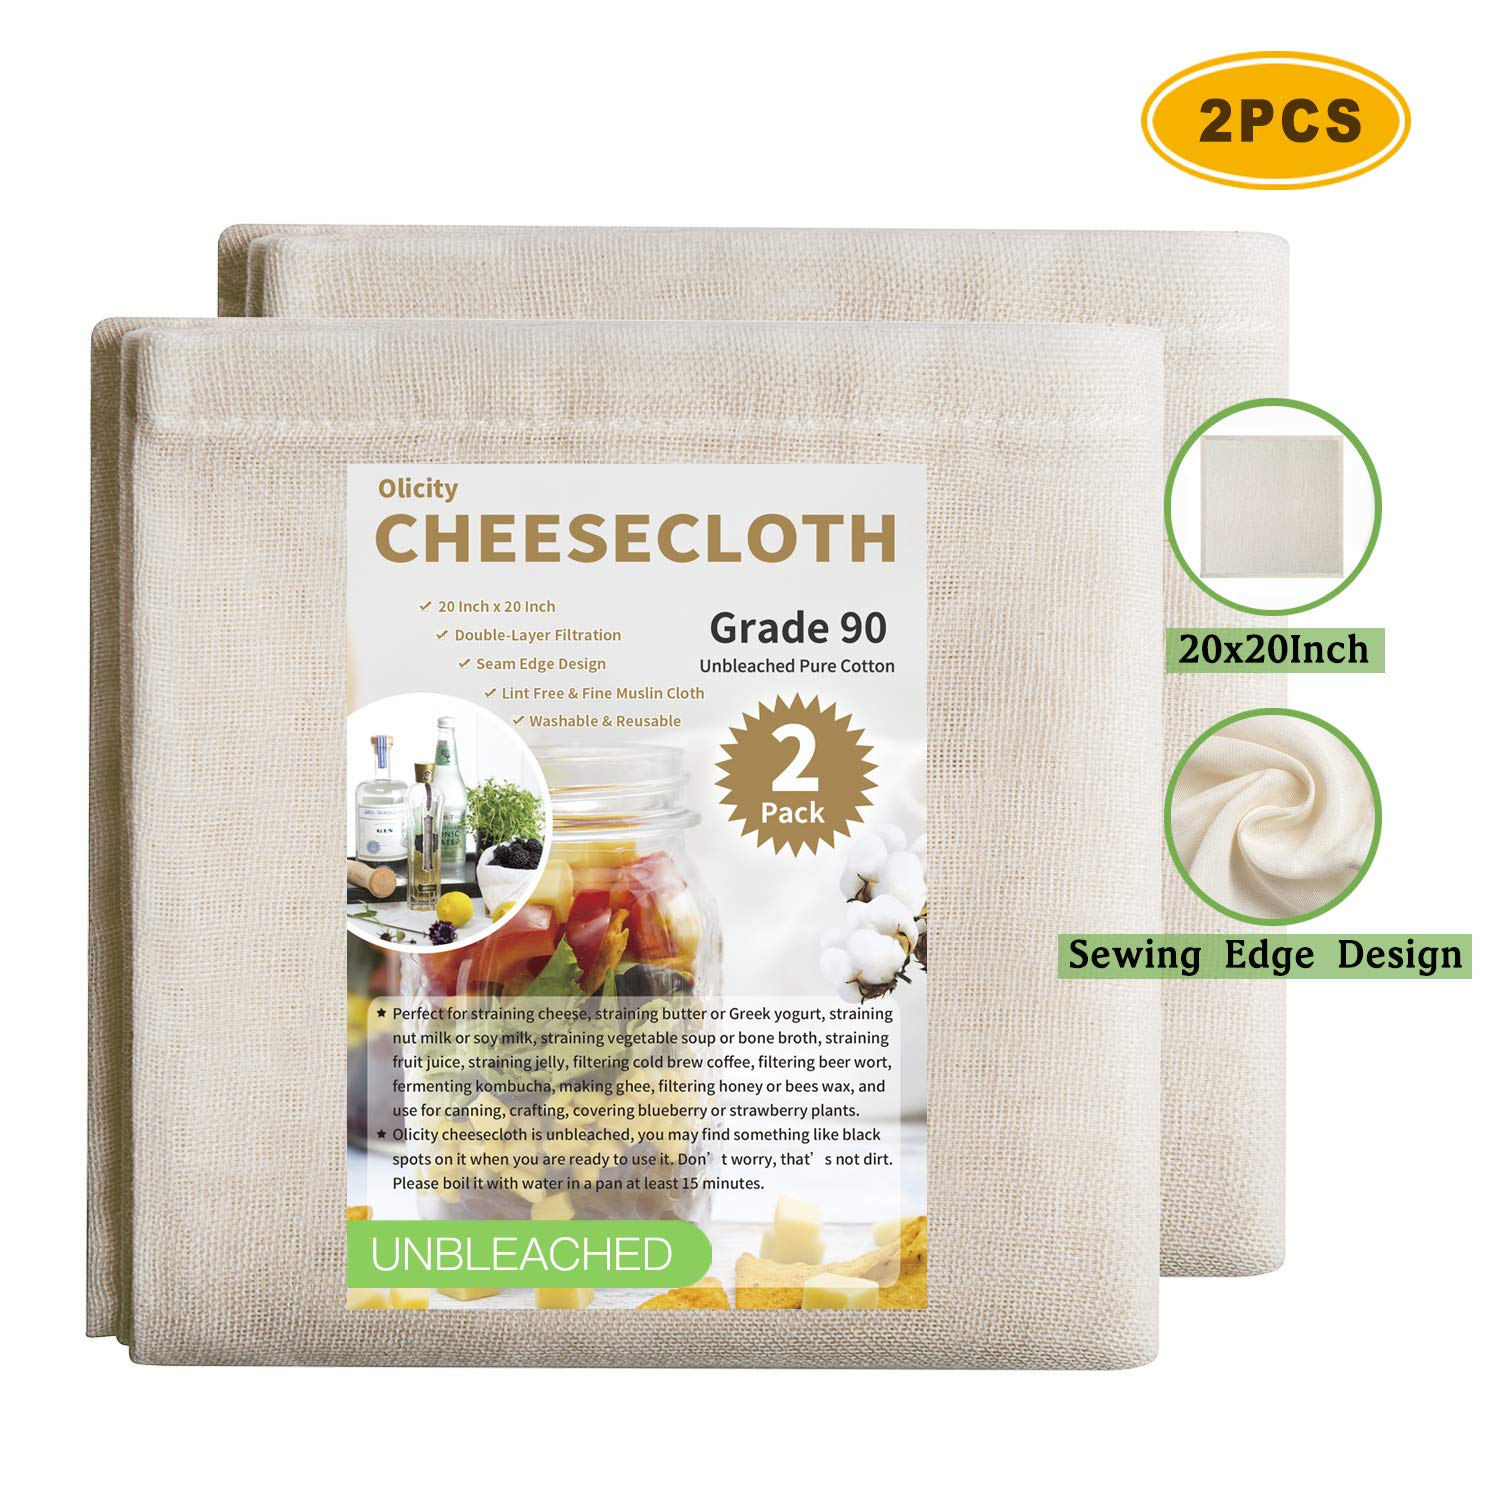 Olicity Cheesecloth, 20 x 20 Inch, Grade 90, 100% Unbleached Pure Cotton Muslin Cloth for Straining, Ultra Fine Reusable Cheese Cloth Fabric Filter Strainer for Cooking, Nut Milk Straining (2 Pieces)